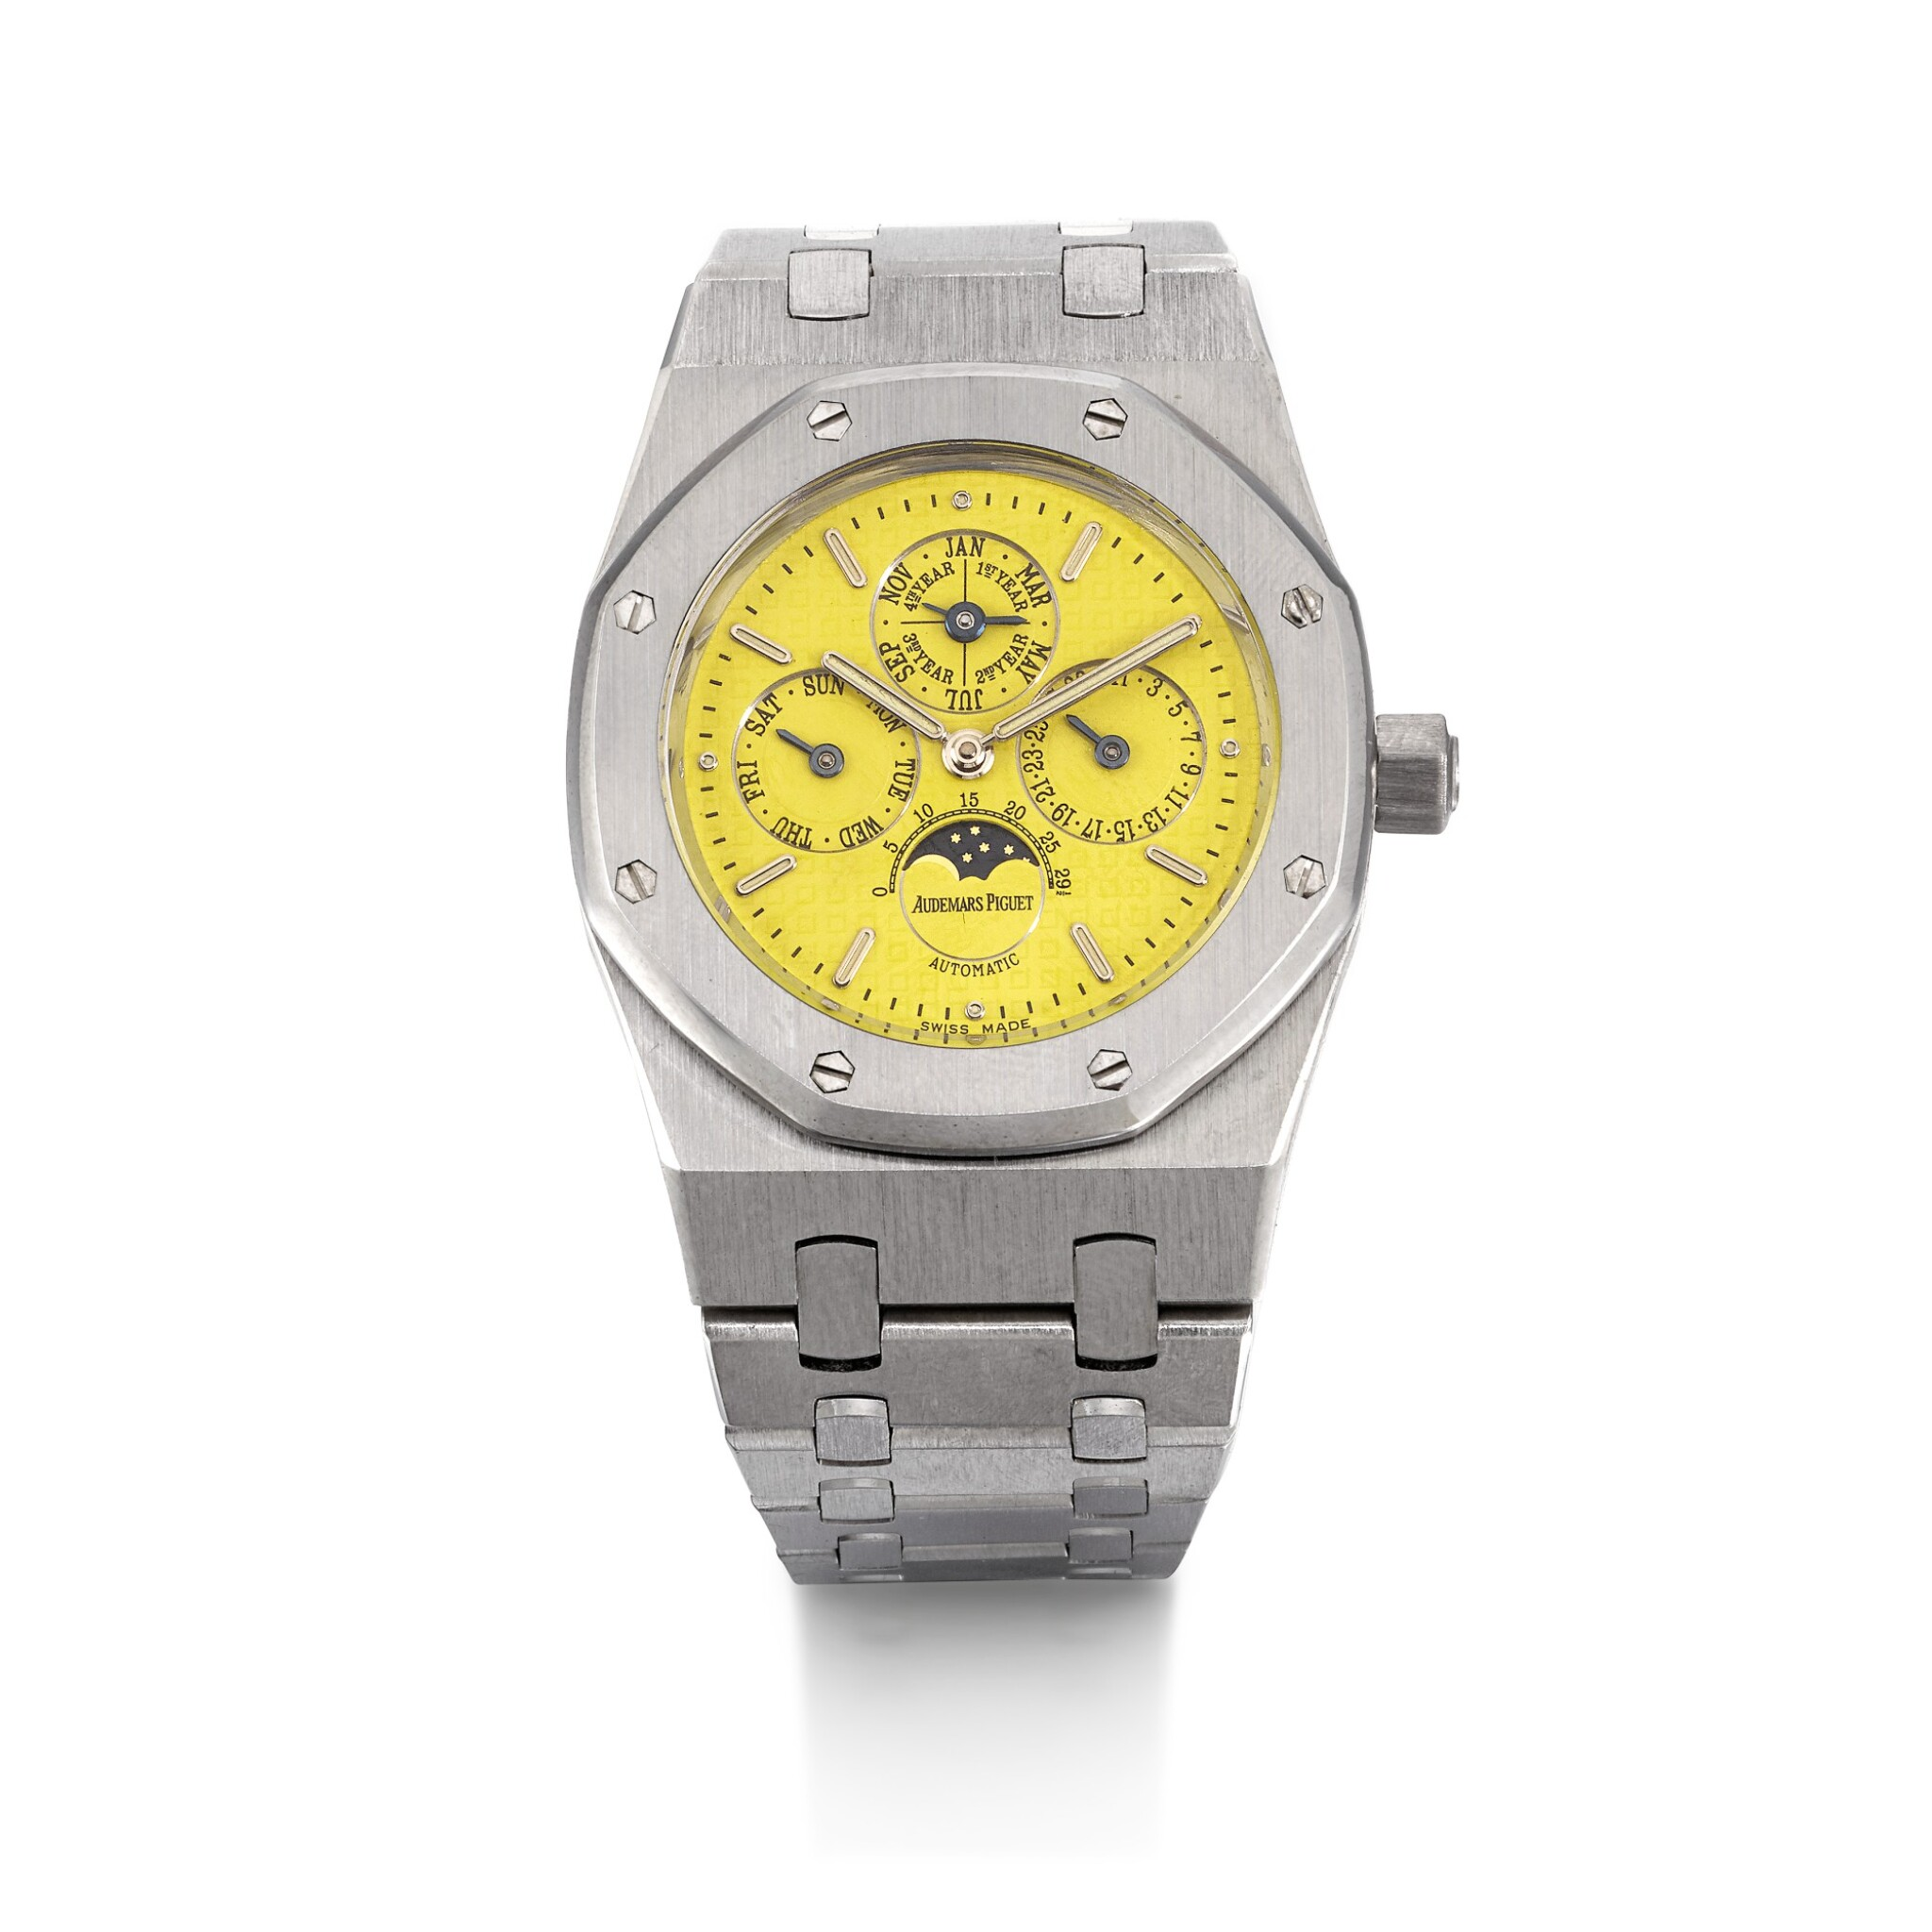 View full screen - View 1 of Lot 201. AUDEMARS PIGUET | AN EXCEPTIONAL ROYAL OAK PERPETUAL CALENDAR, REFERENCE 25800BC WHITE GOLD PERPETUAL CALENDAR BRACELET WATCH WITH A BRIGHT YELLOW DIAL CIRCA 1996.